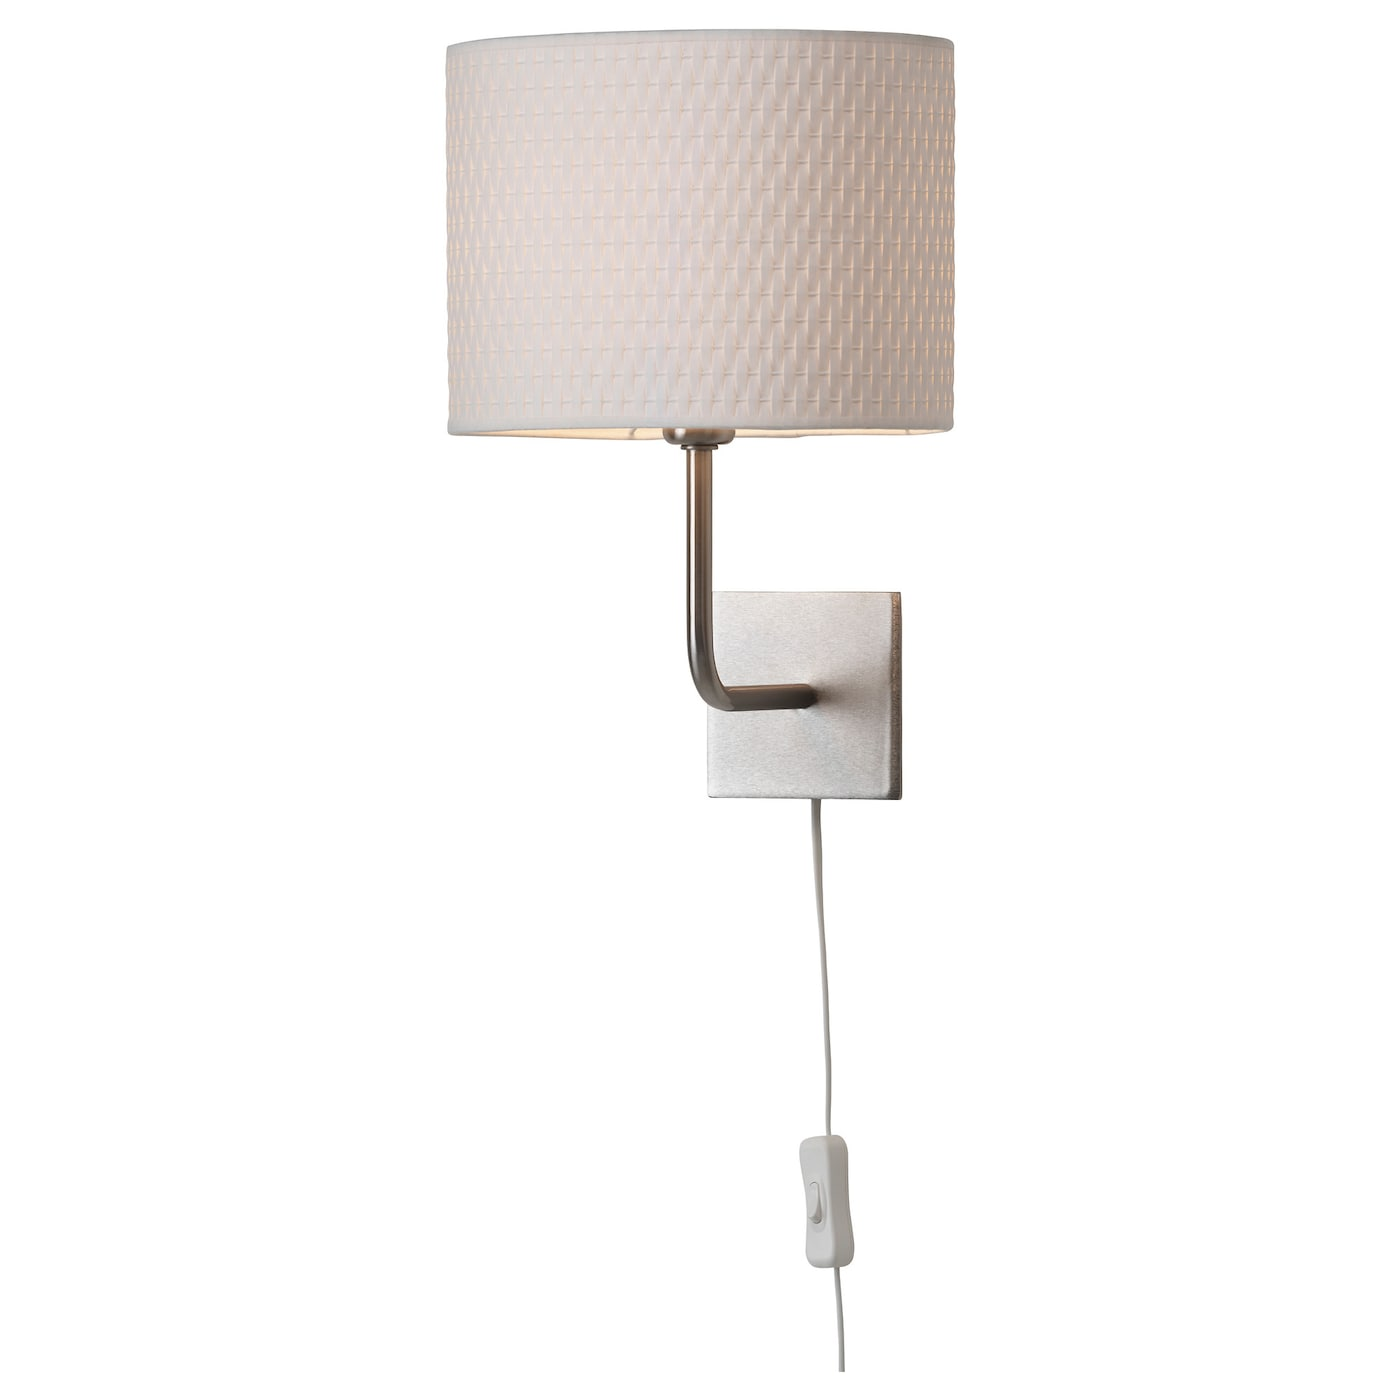 Alng wall lamp nickel platedwhite ikea ikea alng wall lamp gives a soft mood light mozeypictures Image collections